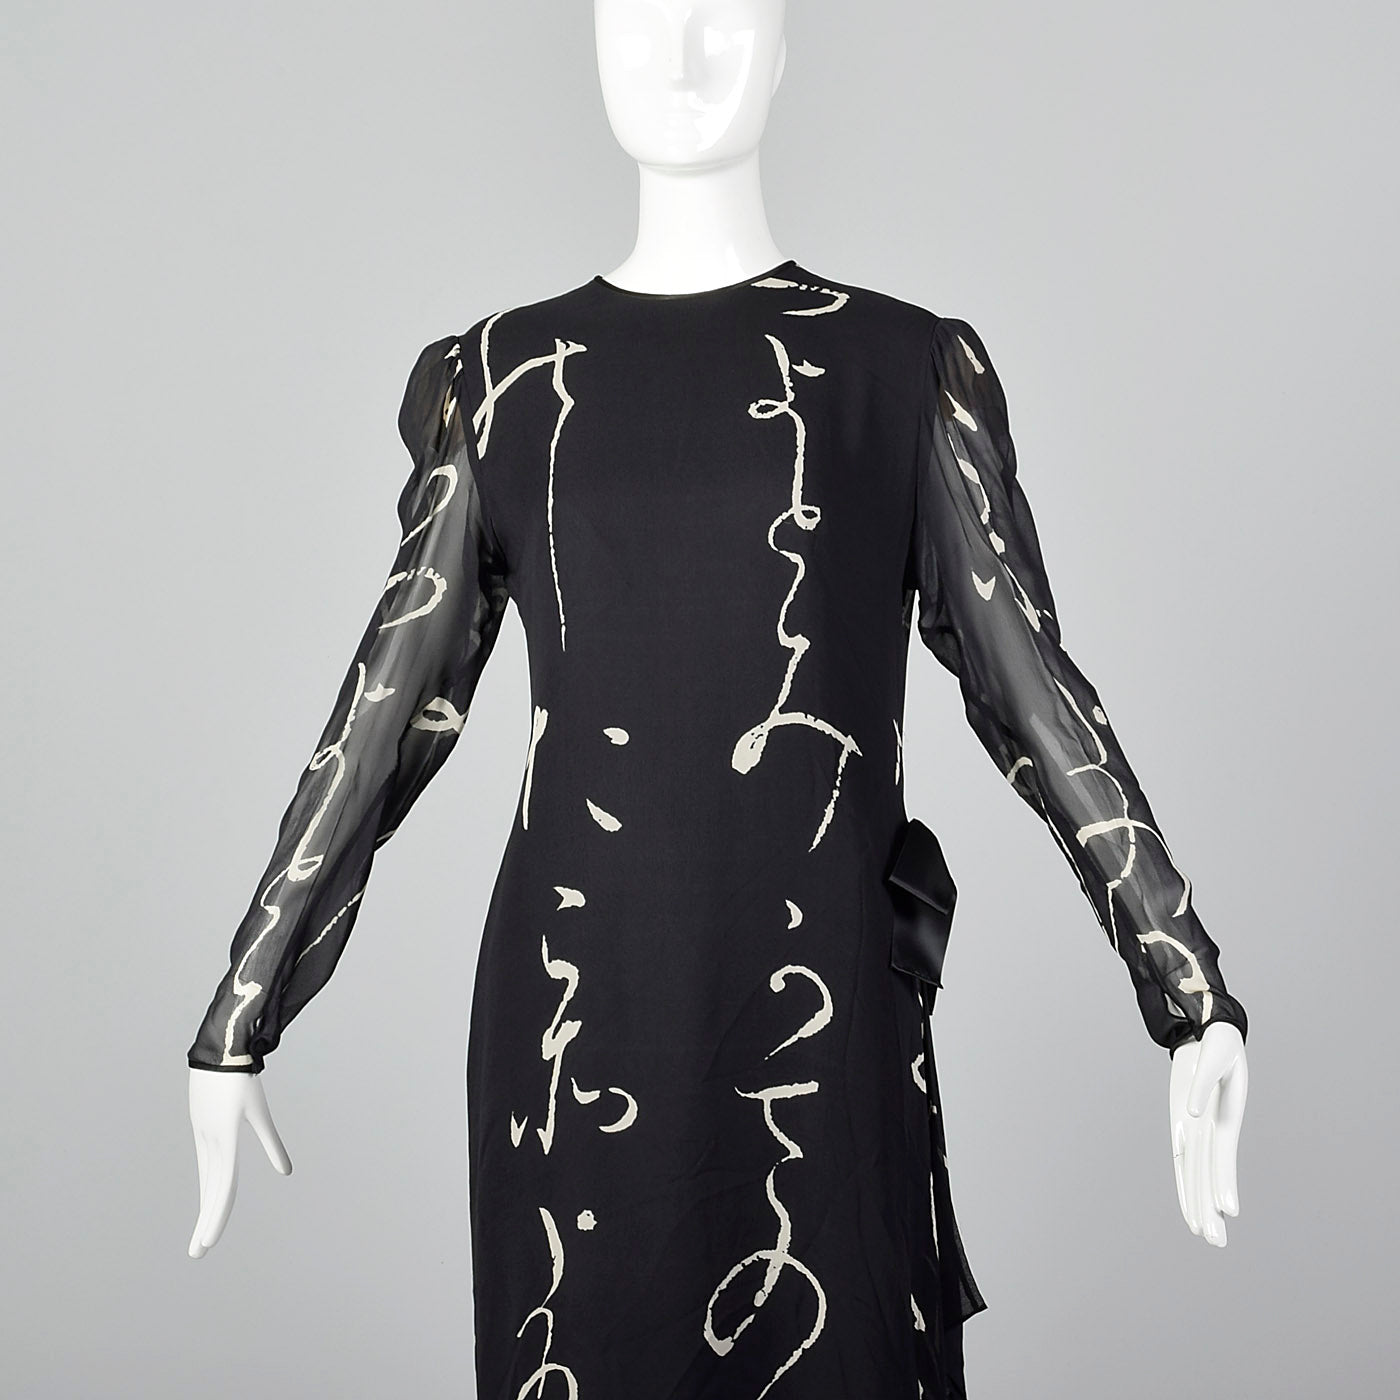 1980s Hanae Mori Black Silk Dress